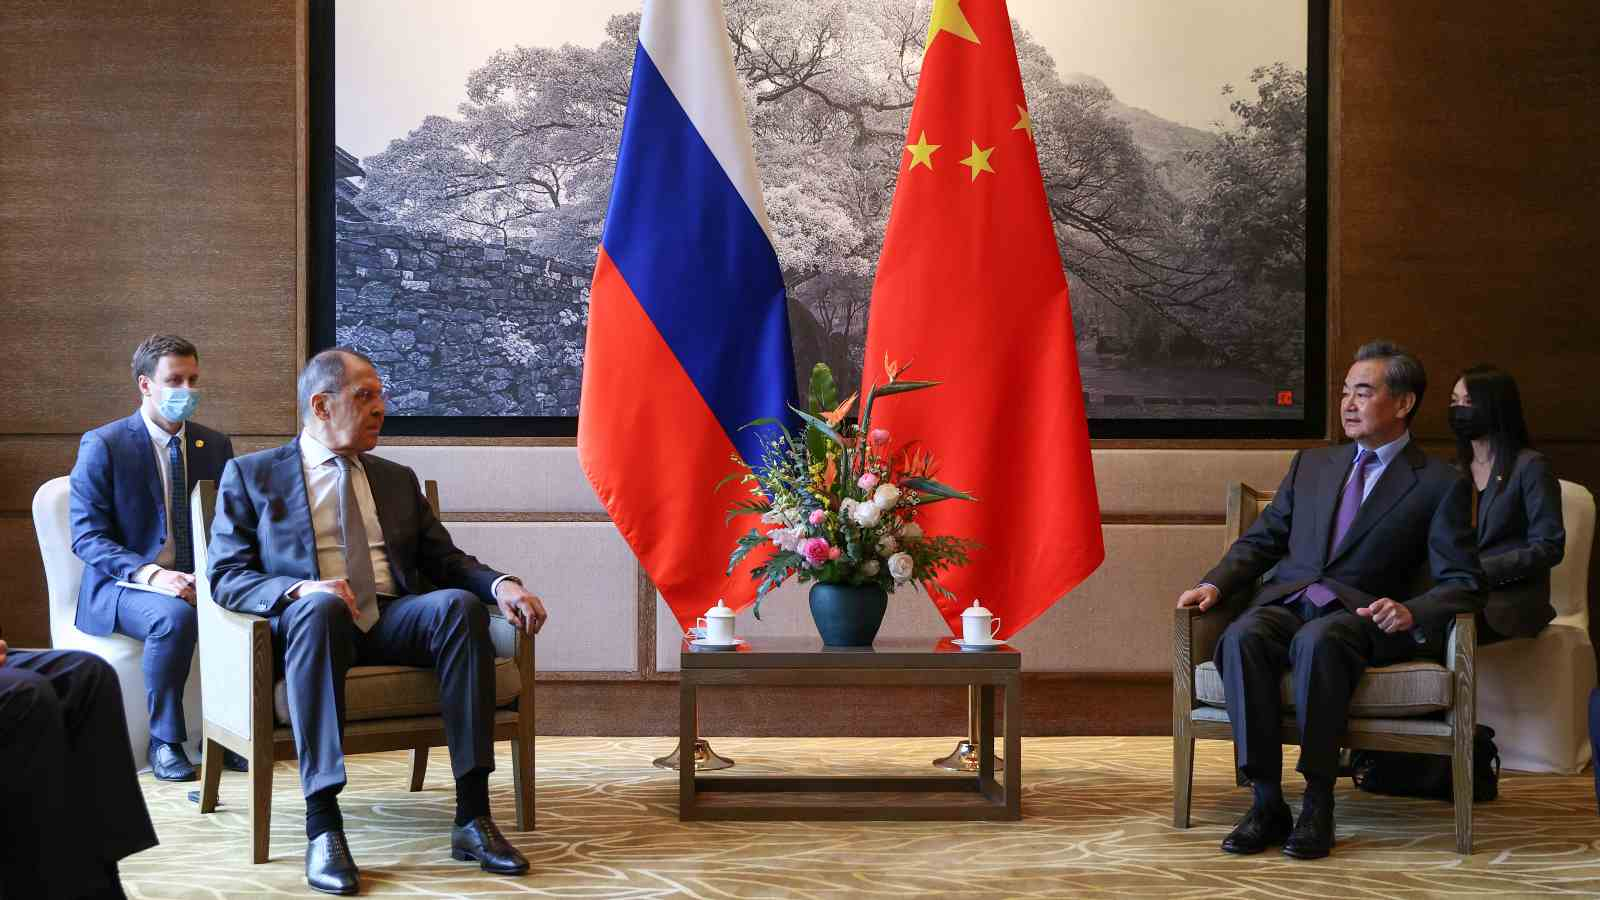 Russia's Foreign Minister Sergei Lavrov and China's Foreign Minister Wang Yi (L-R front) meet for talks. Russian Foreign Ministry/TASS.No use Russia.